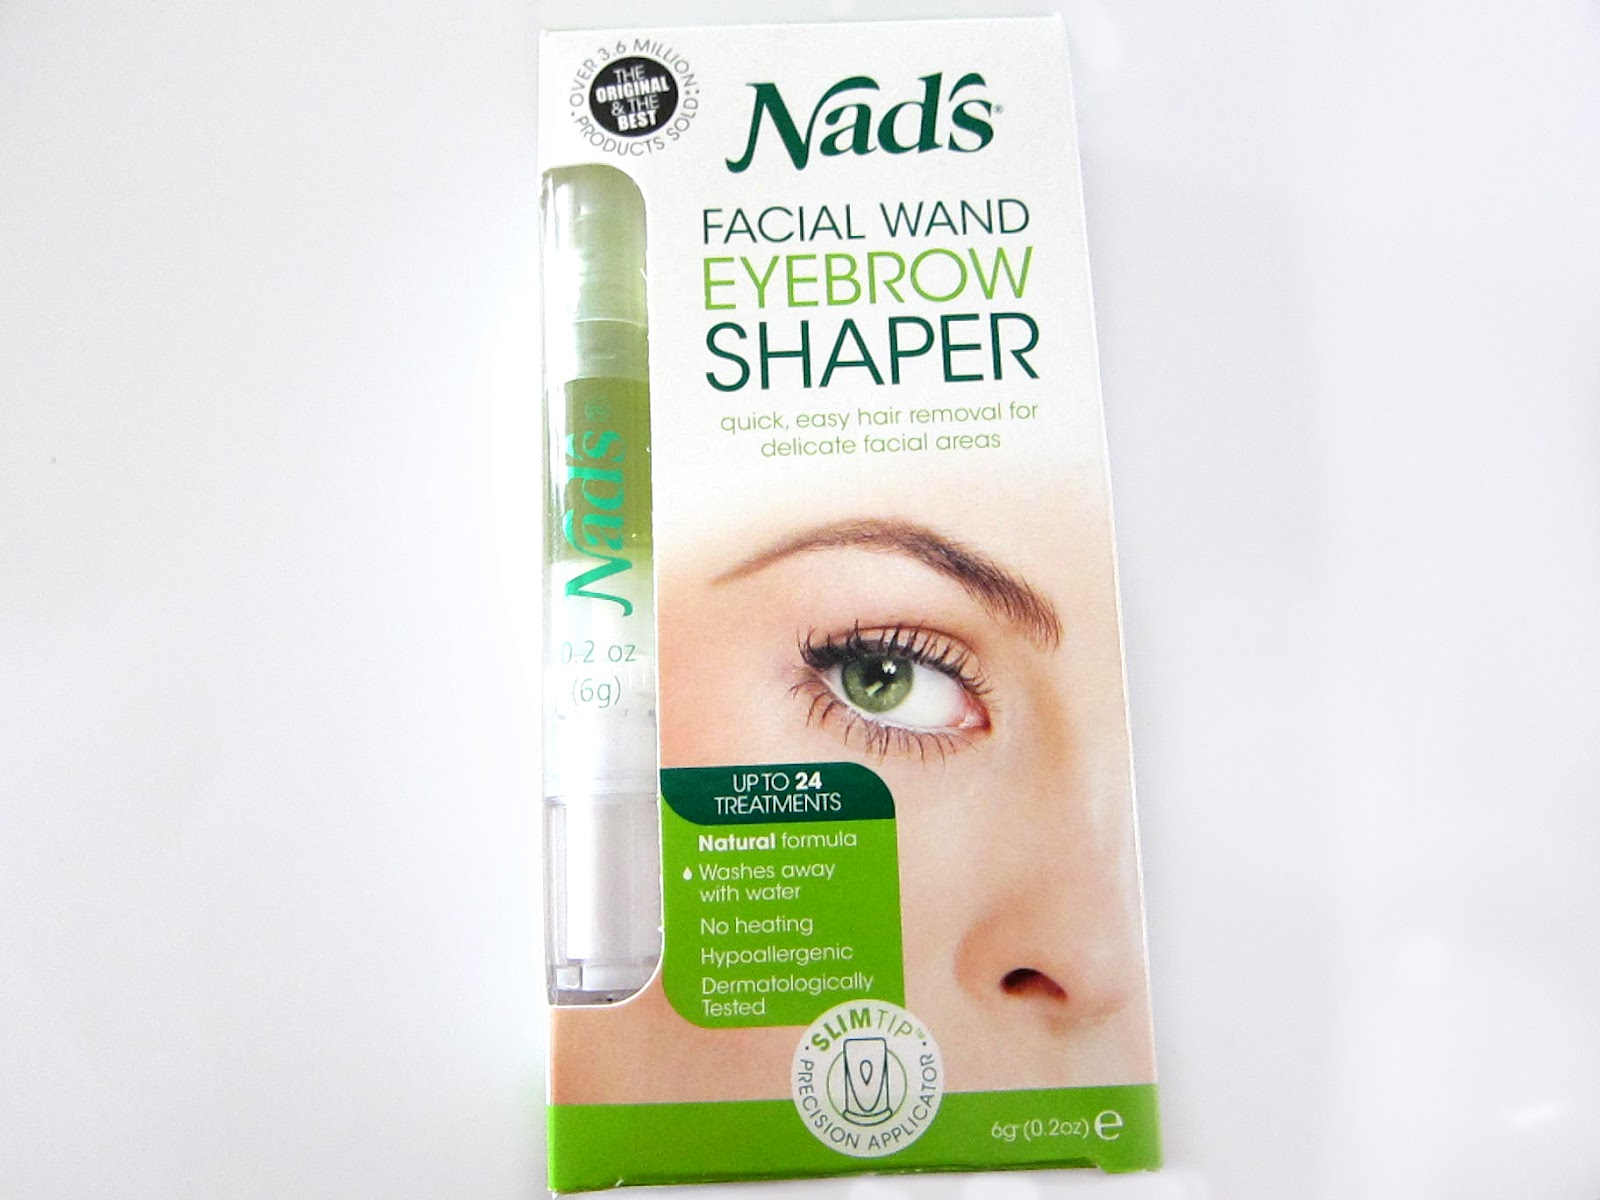 Nads Facial Wand Eyebrow Shaper Review Nad S Facial Wand